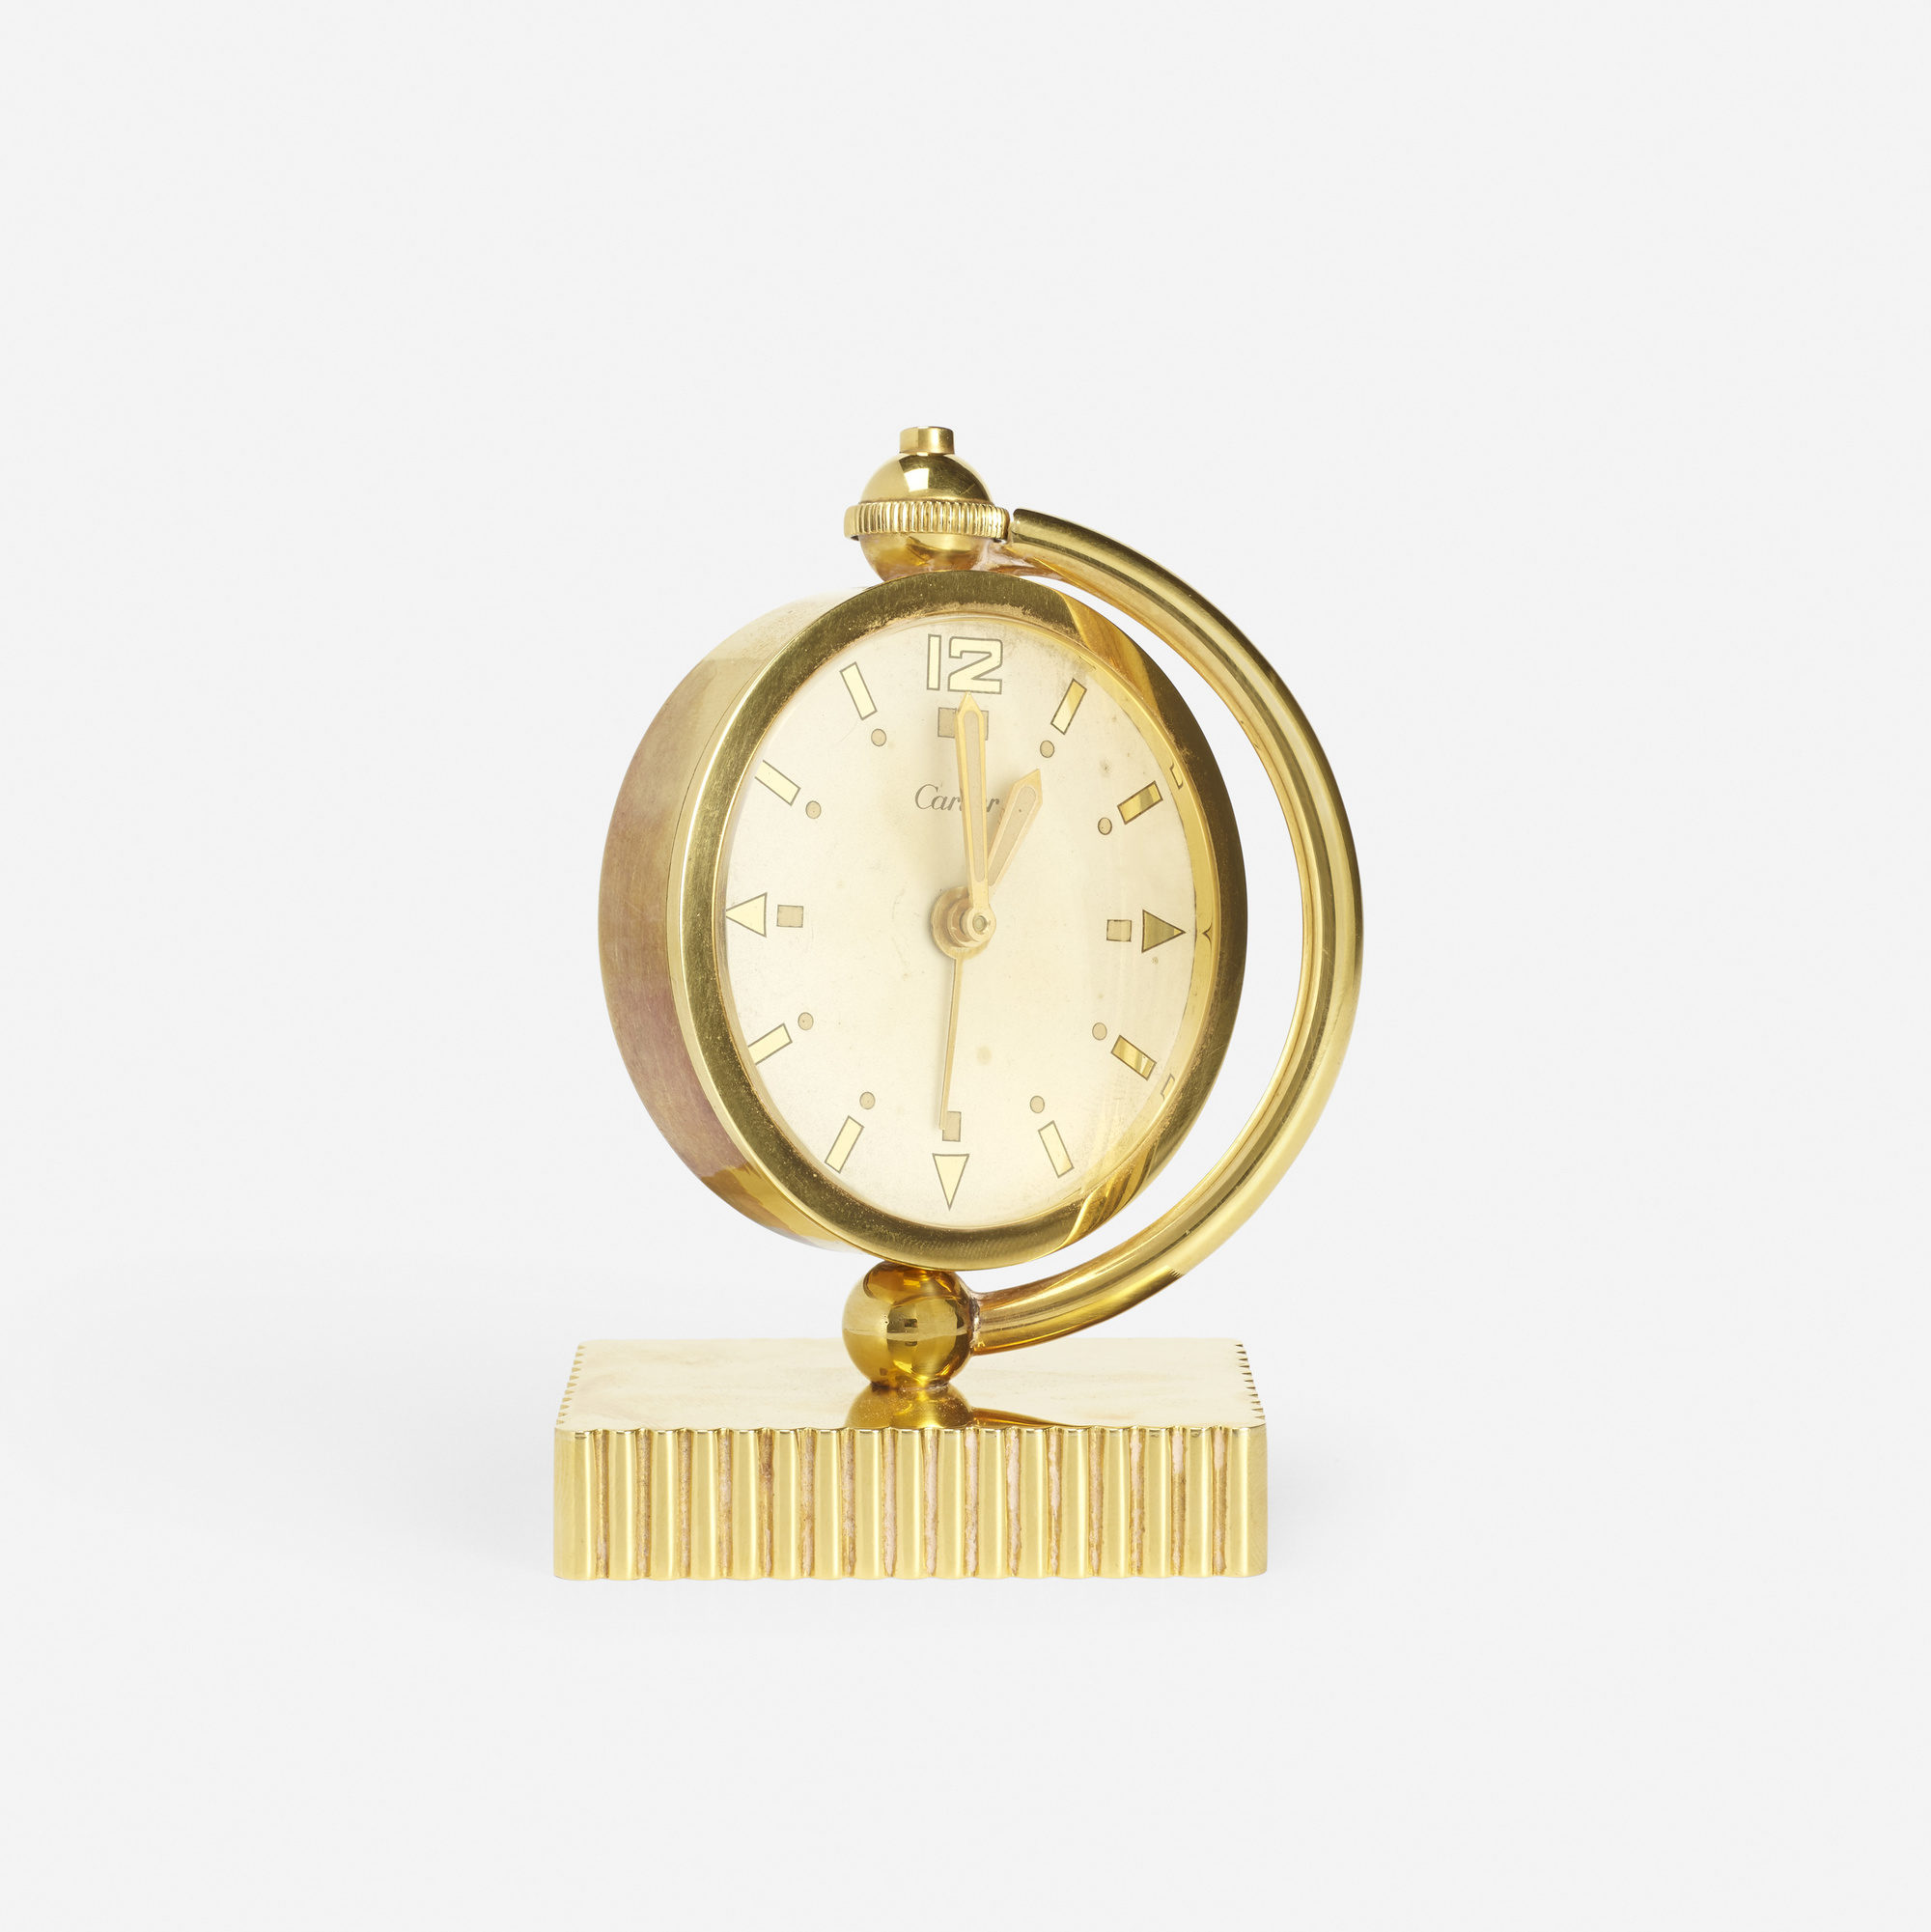 143: Cartier / A gold table clock (1 of 2)